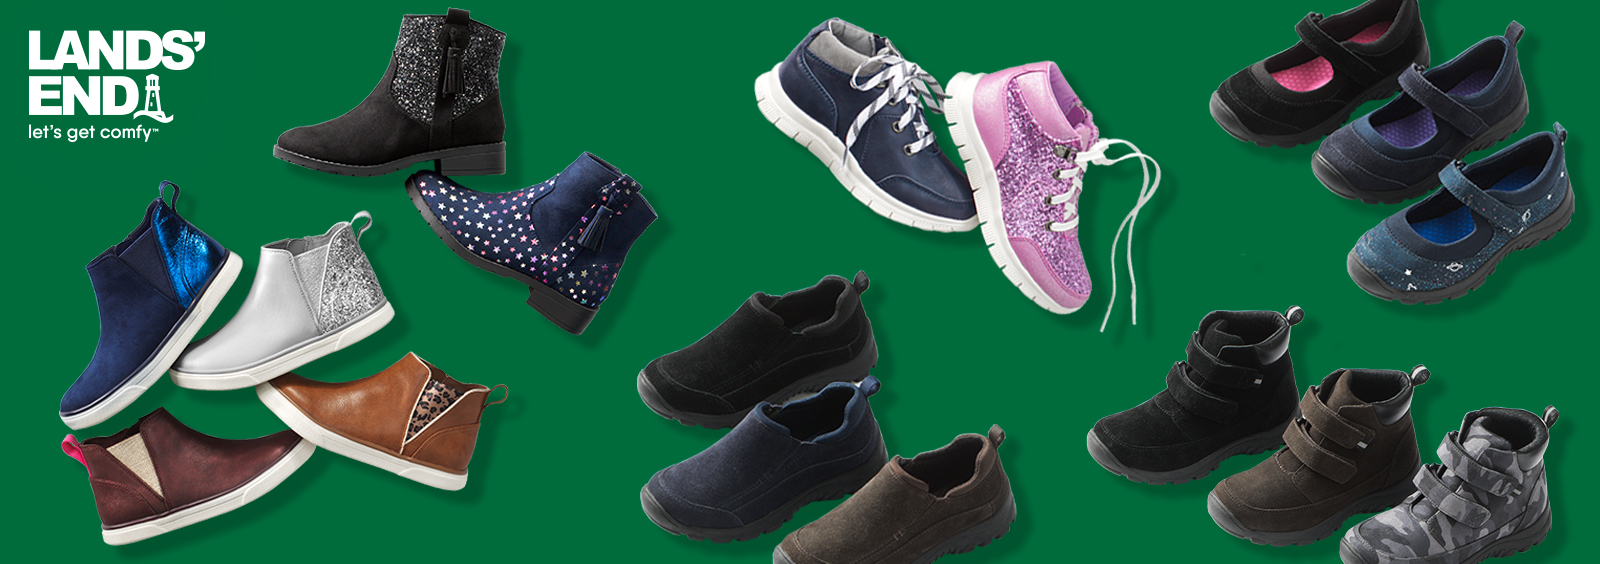 Guide to Kids' Shoes for Back-to-School